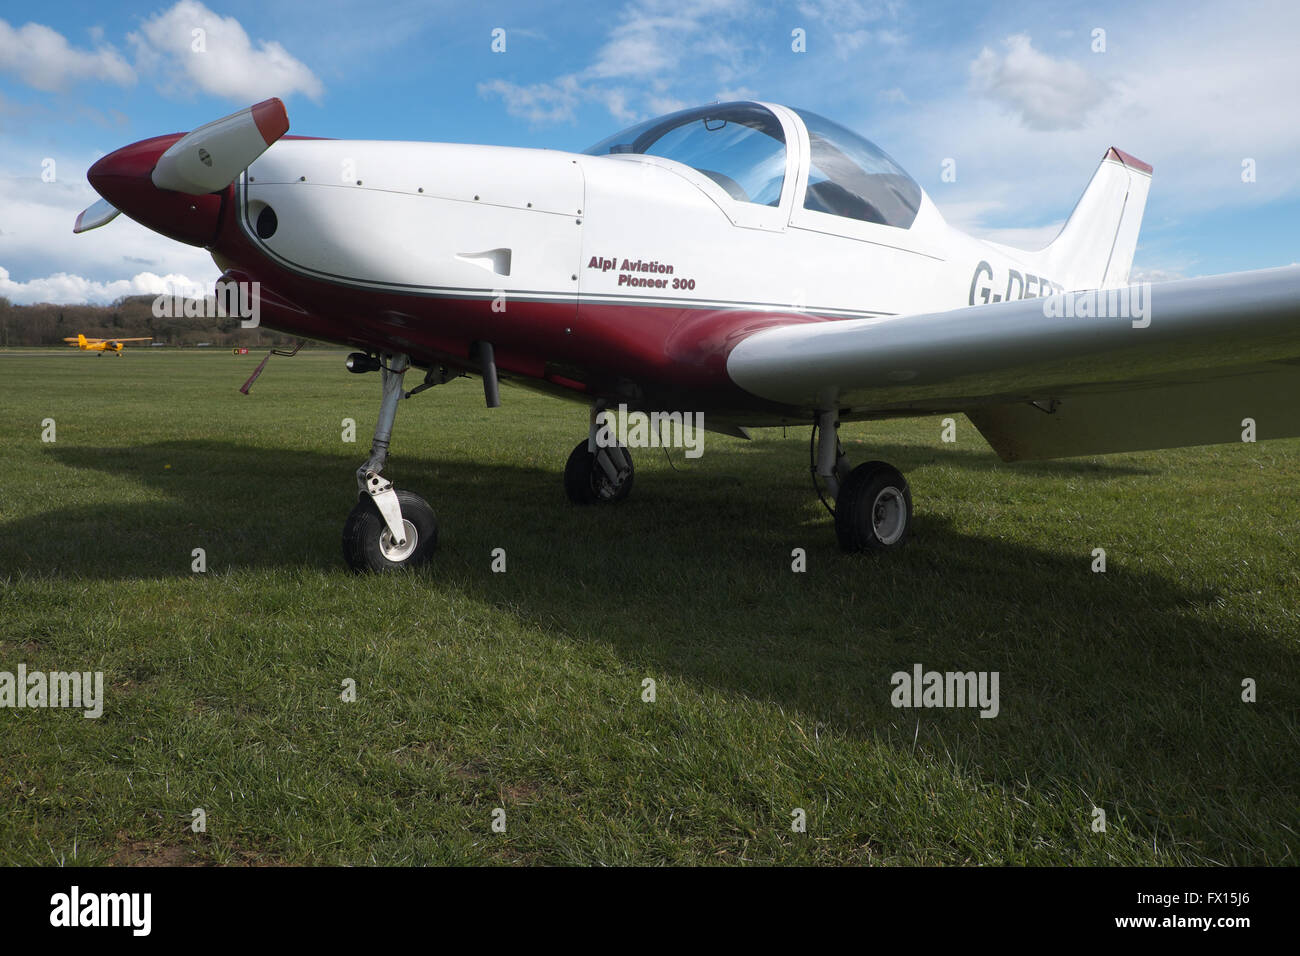 Alpi Aviation Pioneer 300 light aircraft at a grass airfield in the UK - Stock Image